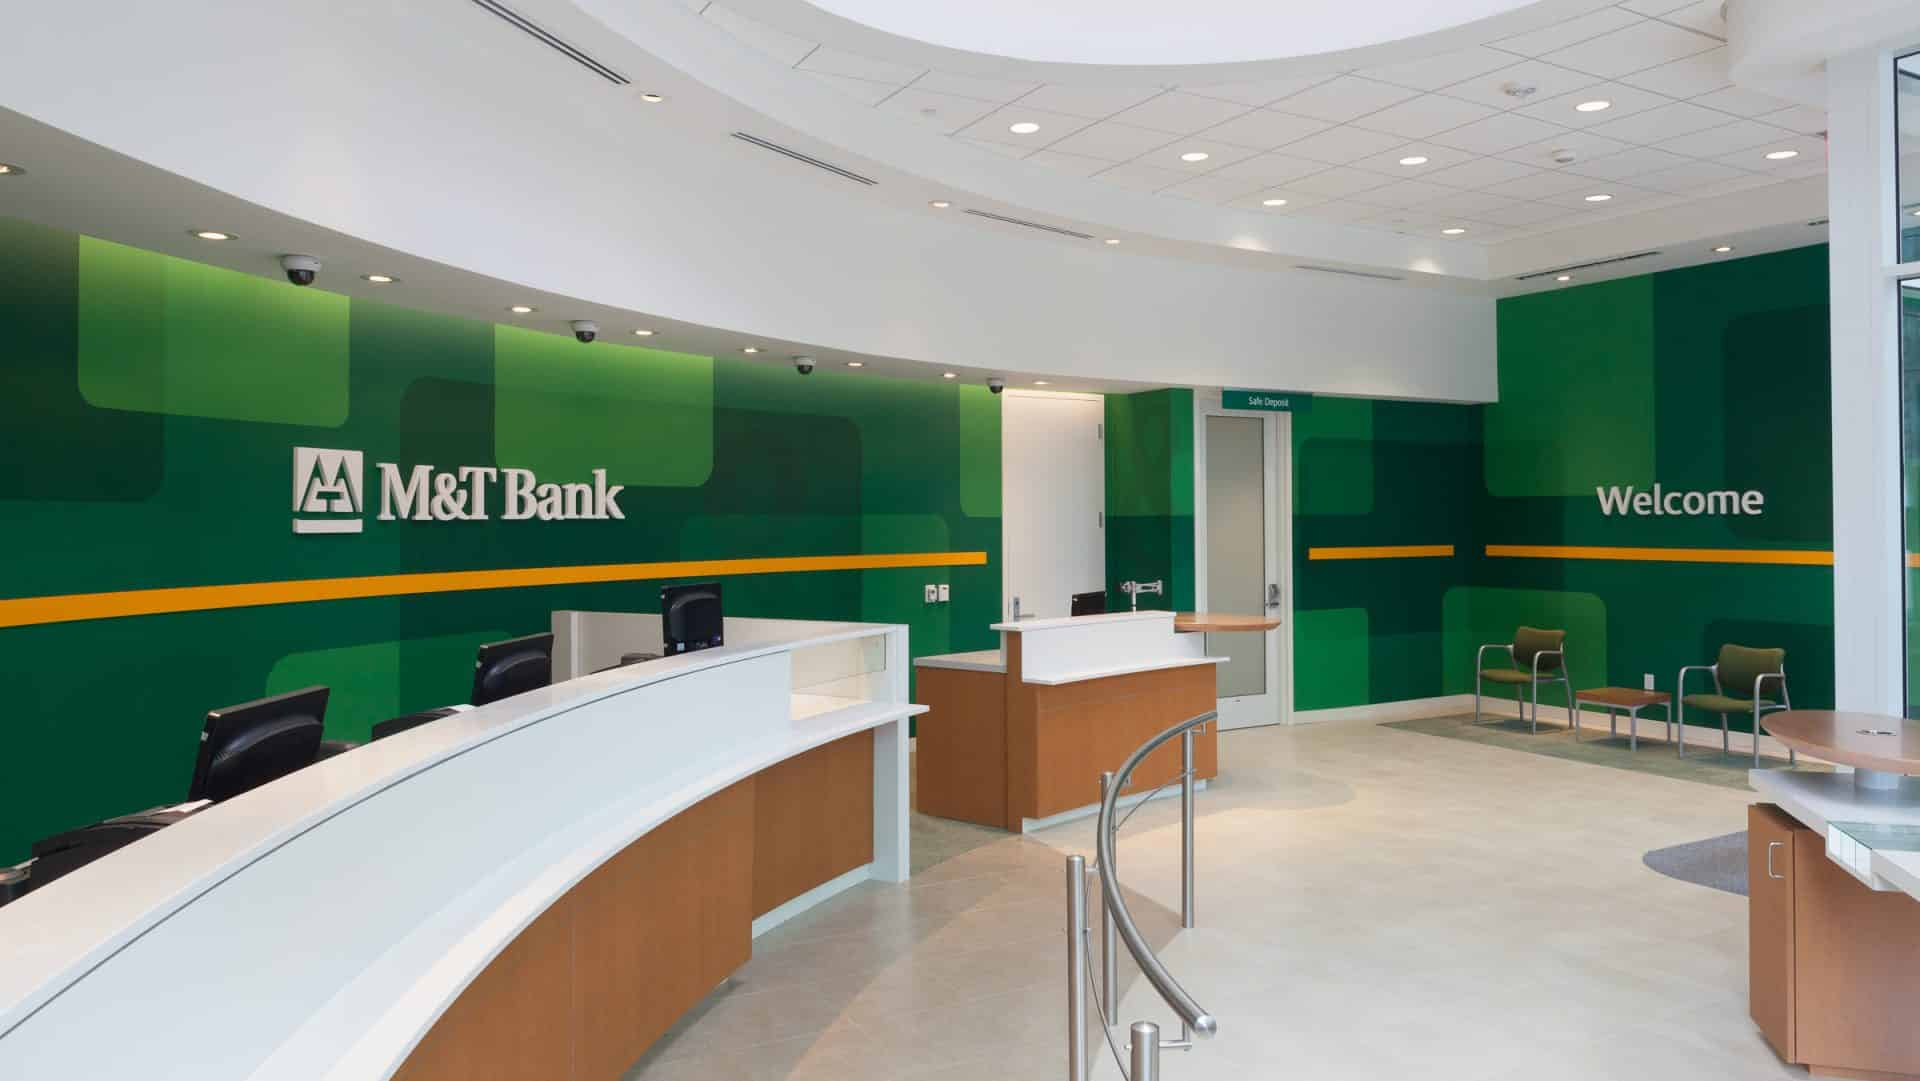 Interior view showing counter space - M&T Bank - LEED Consulting Project.